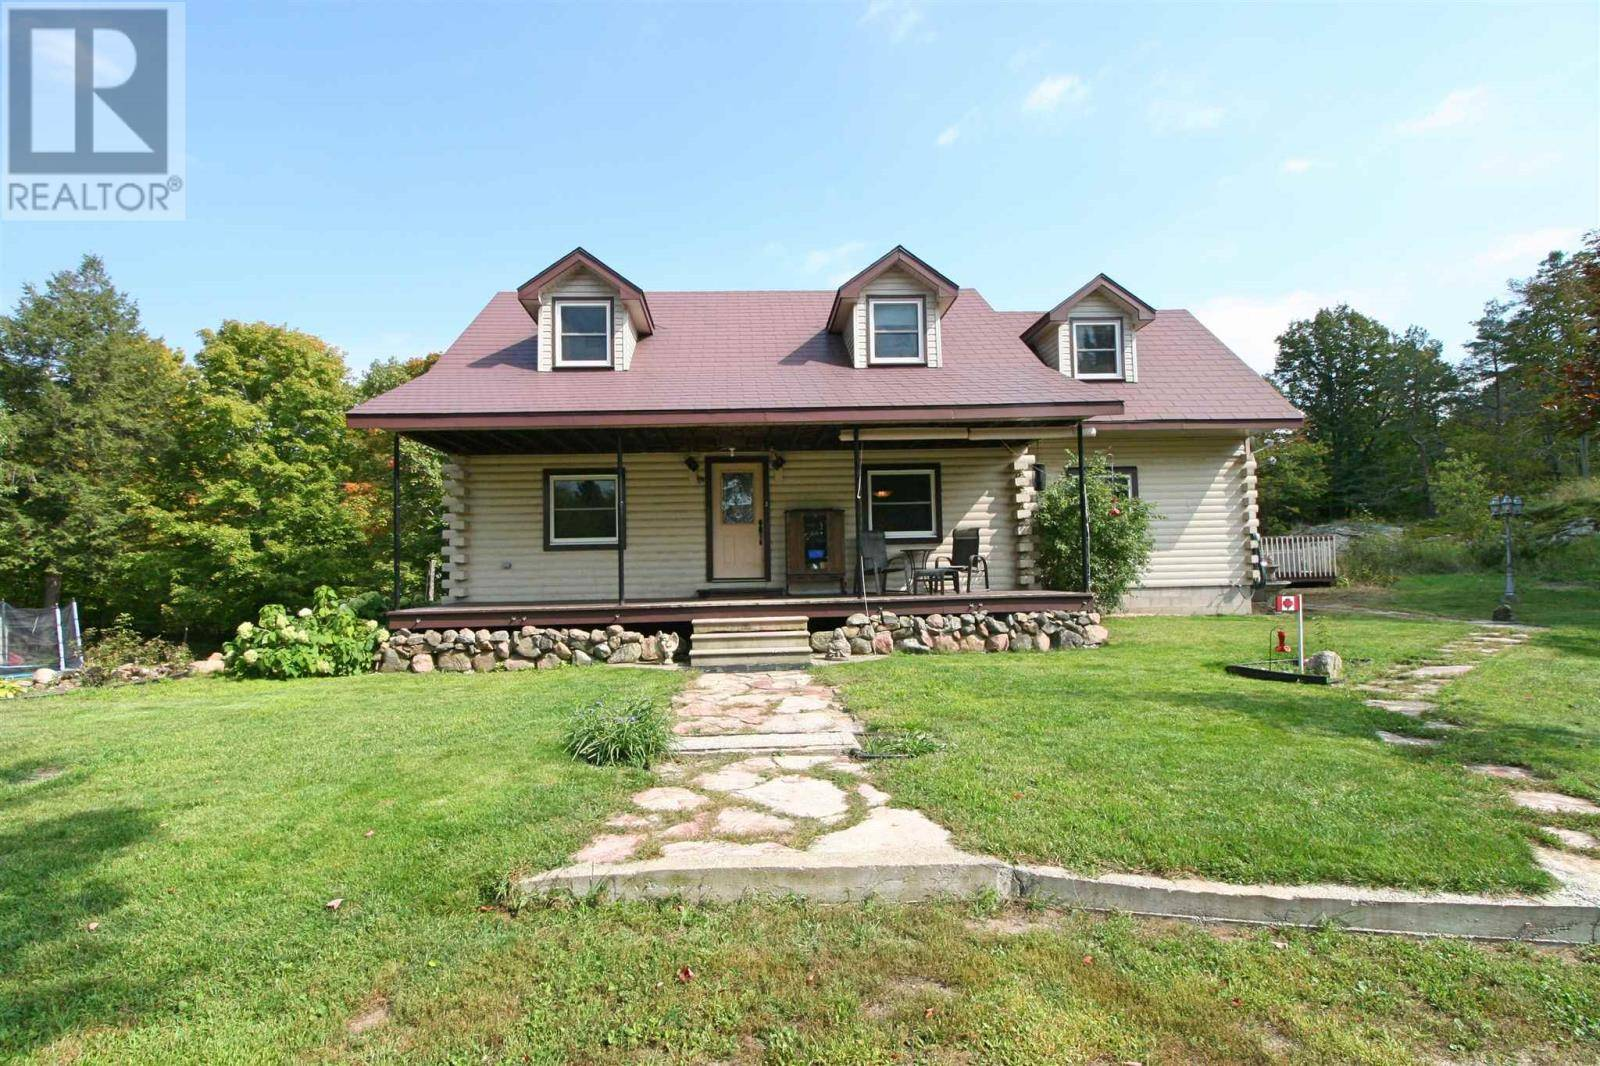 House for sale at 2988 Long Lake Rd Central Frontenac Twp Ontario - MLS: K19006186